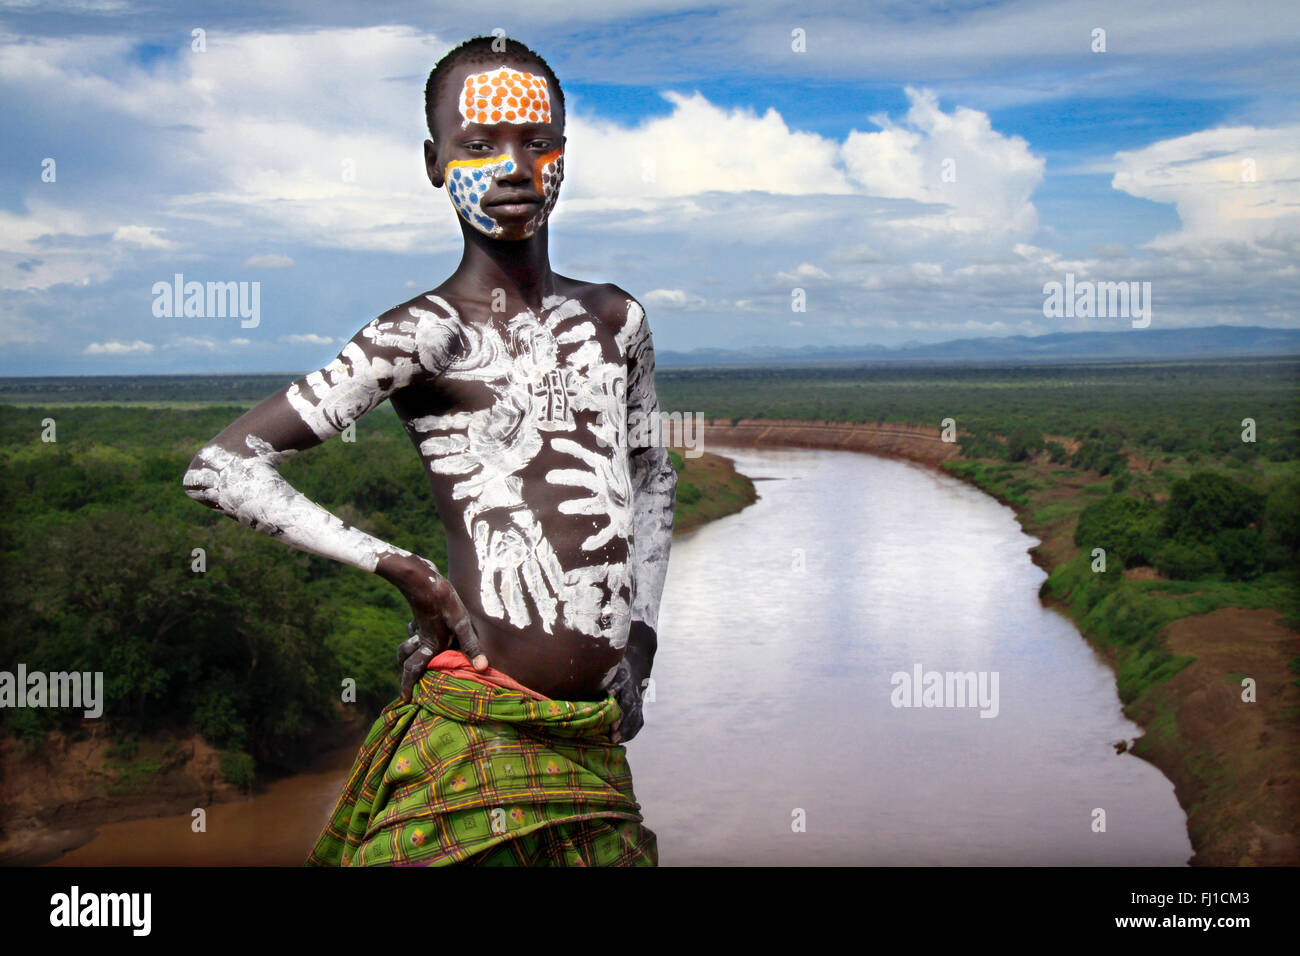 Karo young man with body painting,  posing in village in front of Omo river in Omo valley , Ethiopia - Stock Image